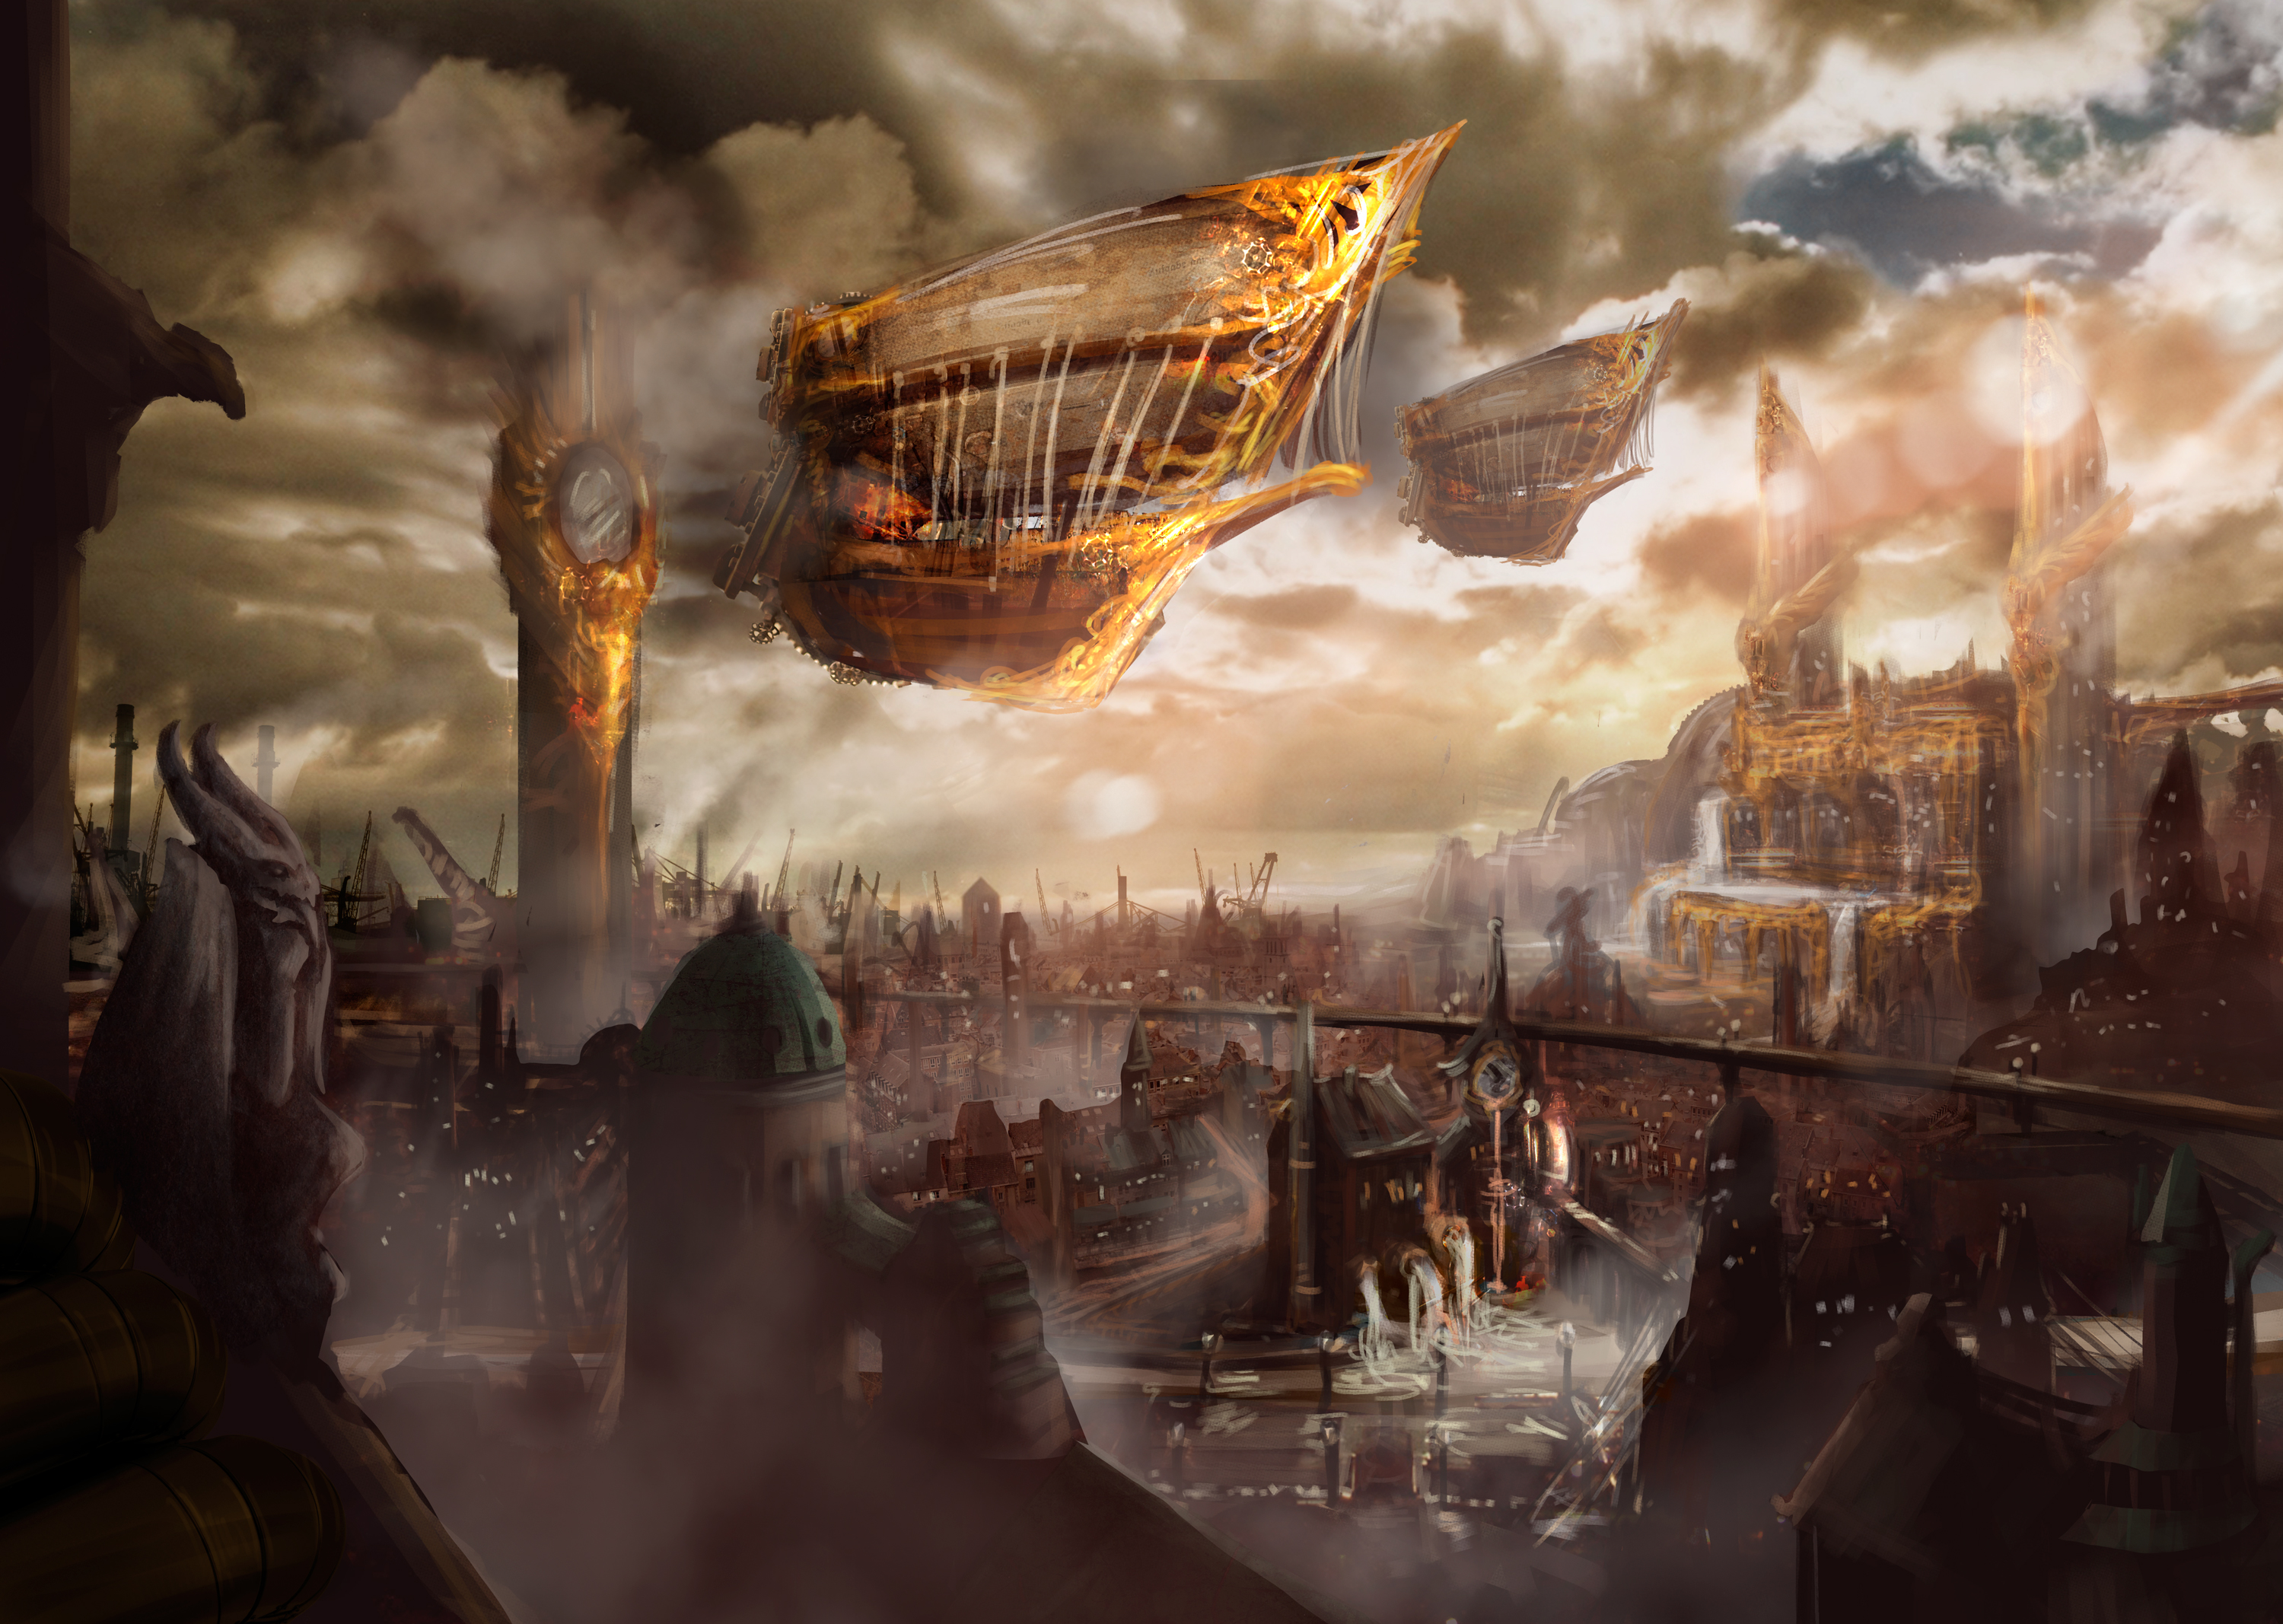 steampunk landscape by grimdreamart - photo #24